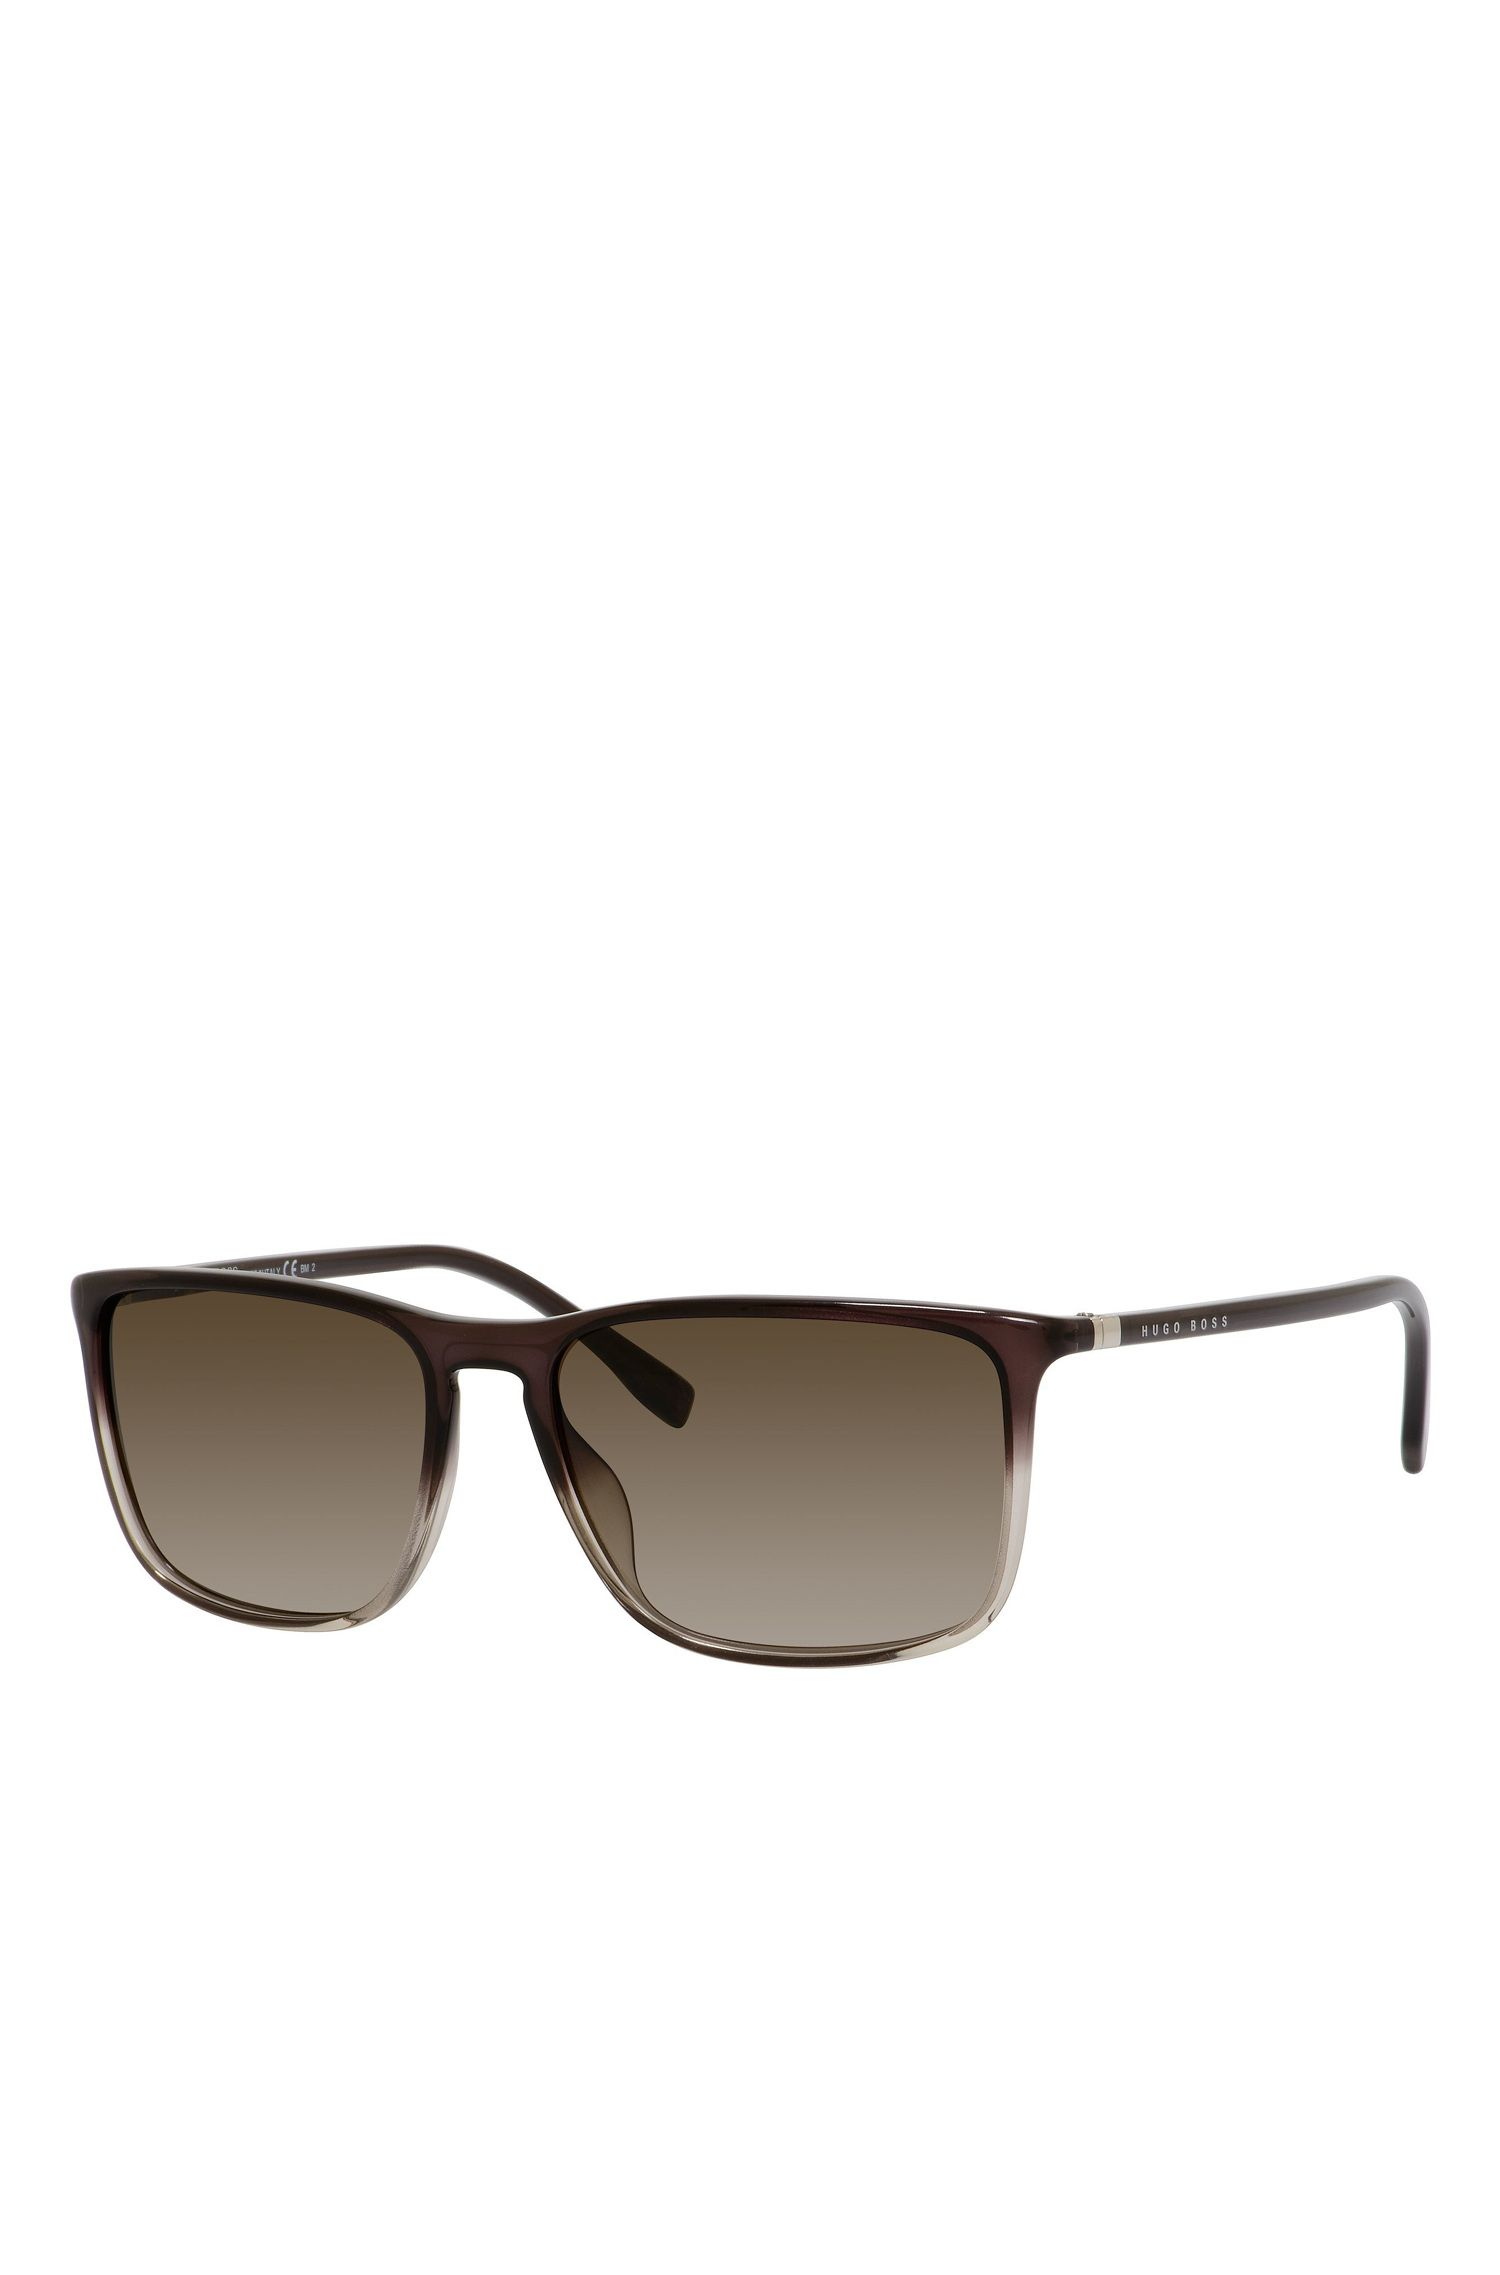 Gradient Lens Rectangular Sunglasses | BOSS 0665S